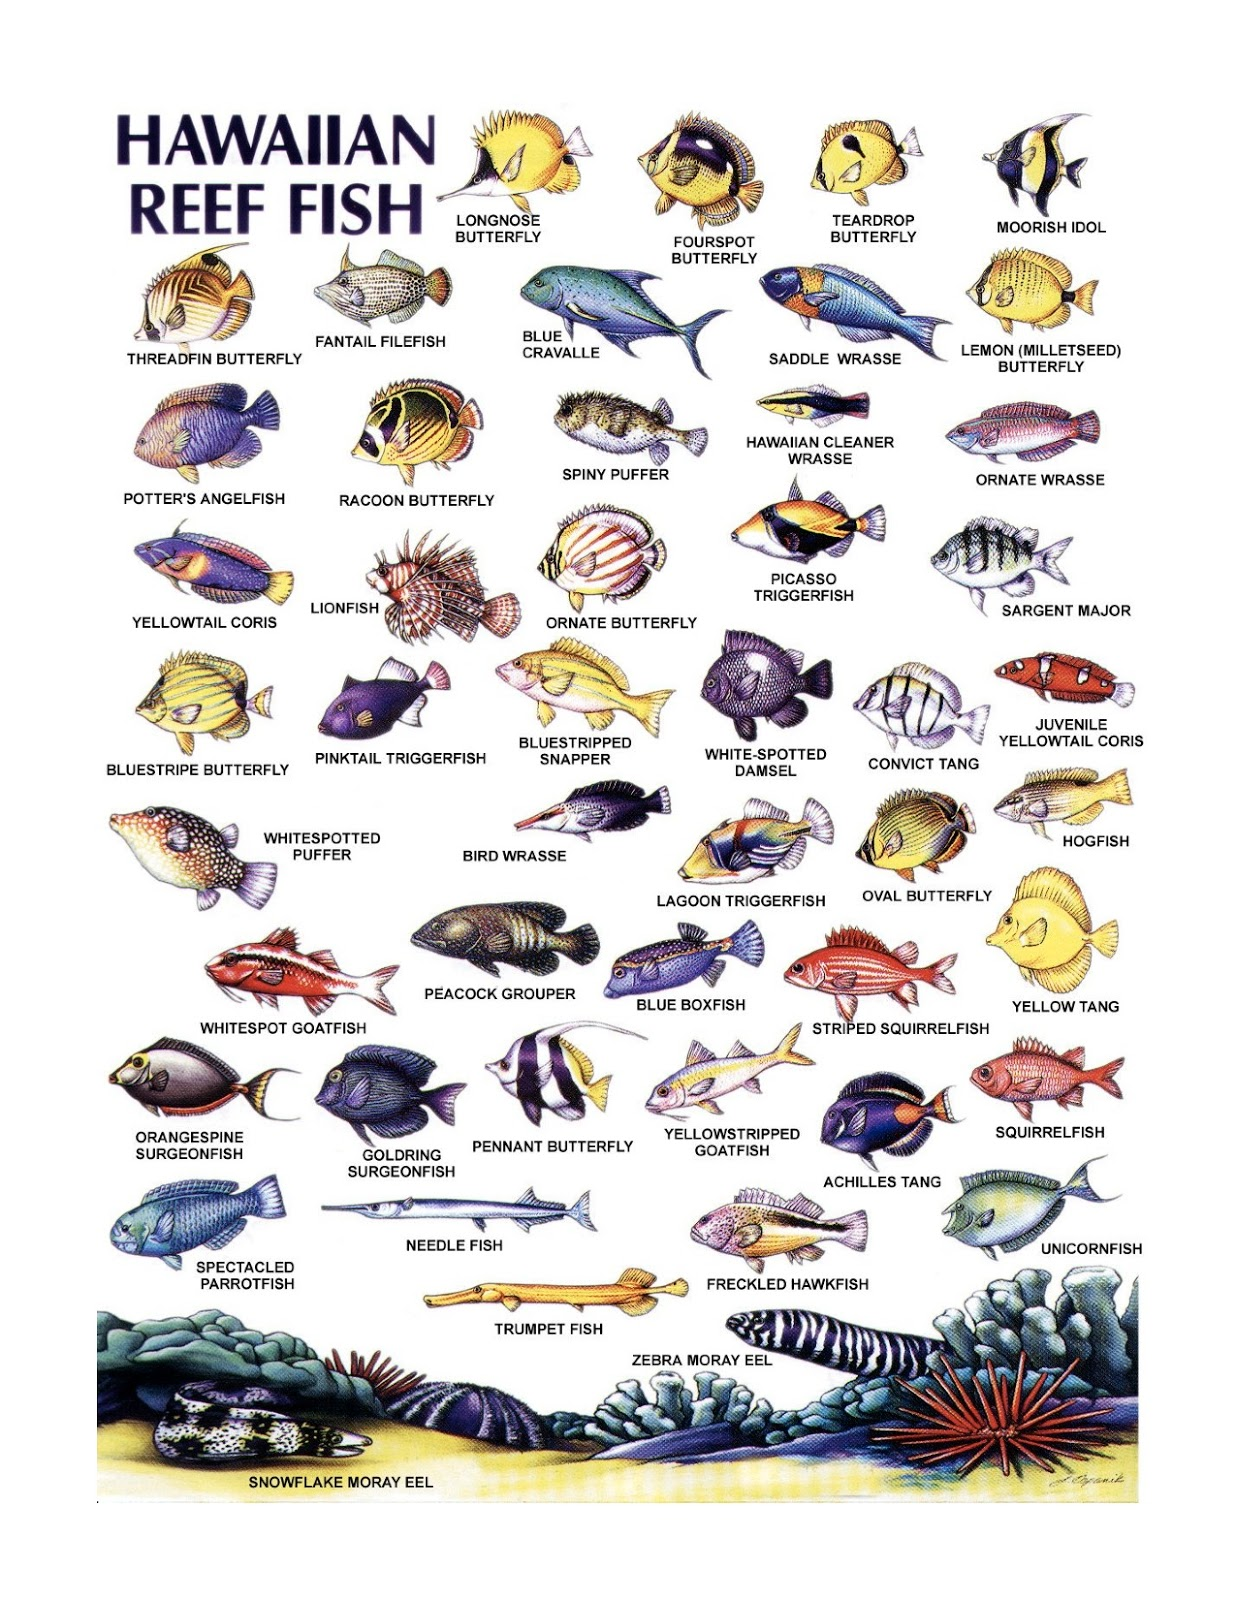 Image gallery hawaii reef fish for Hawaii reef fish